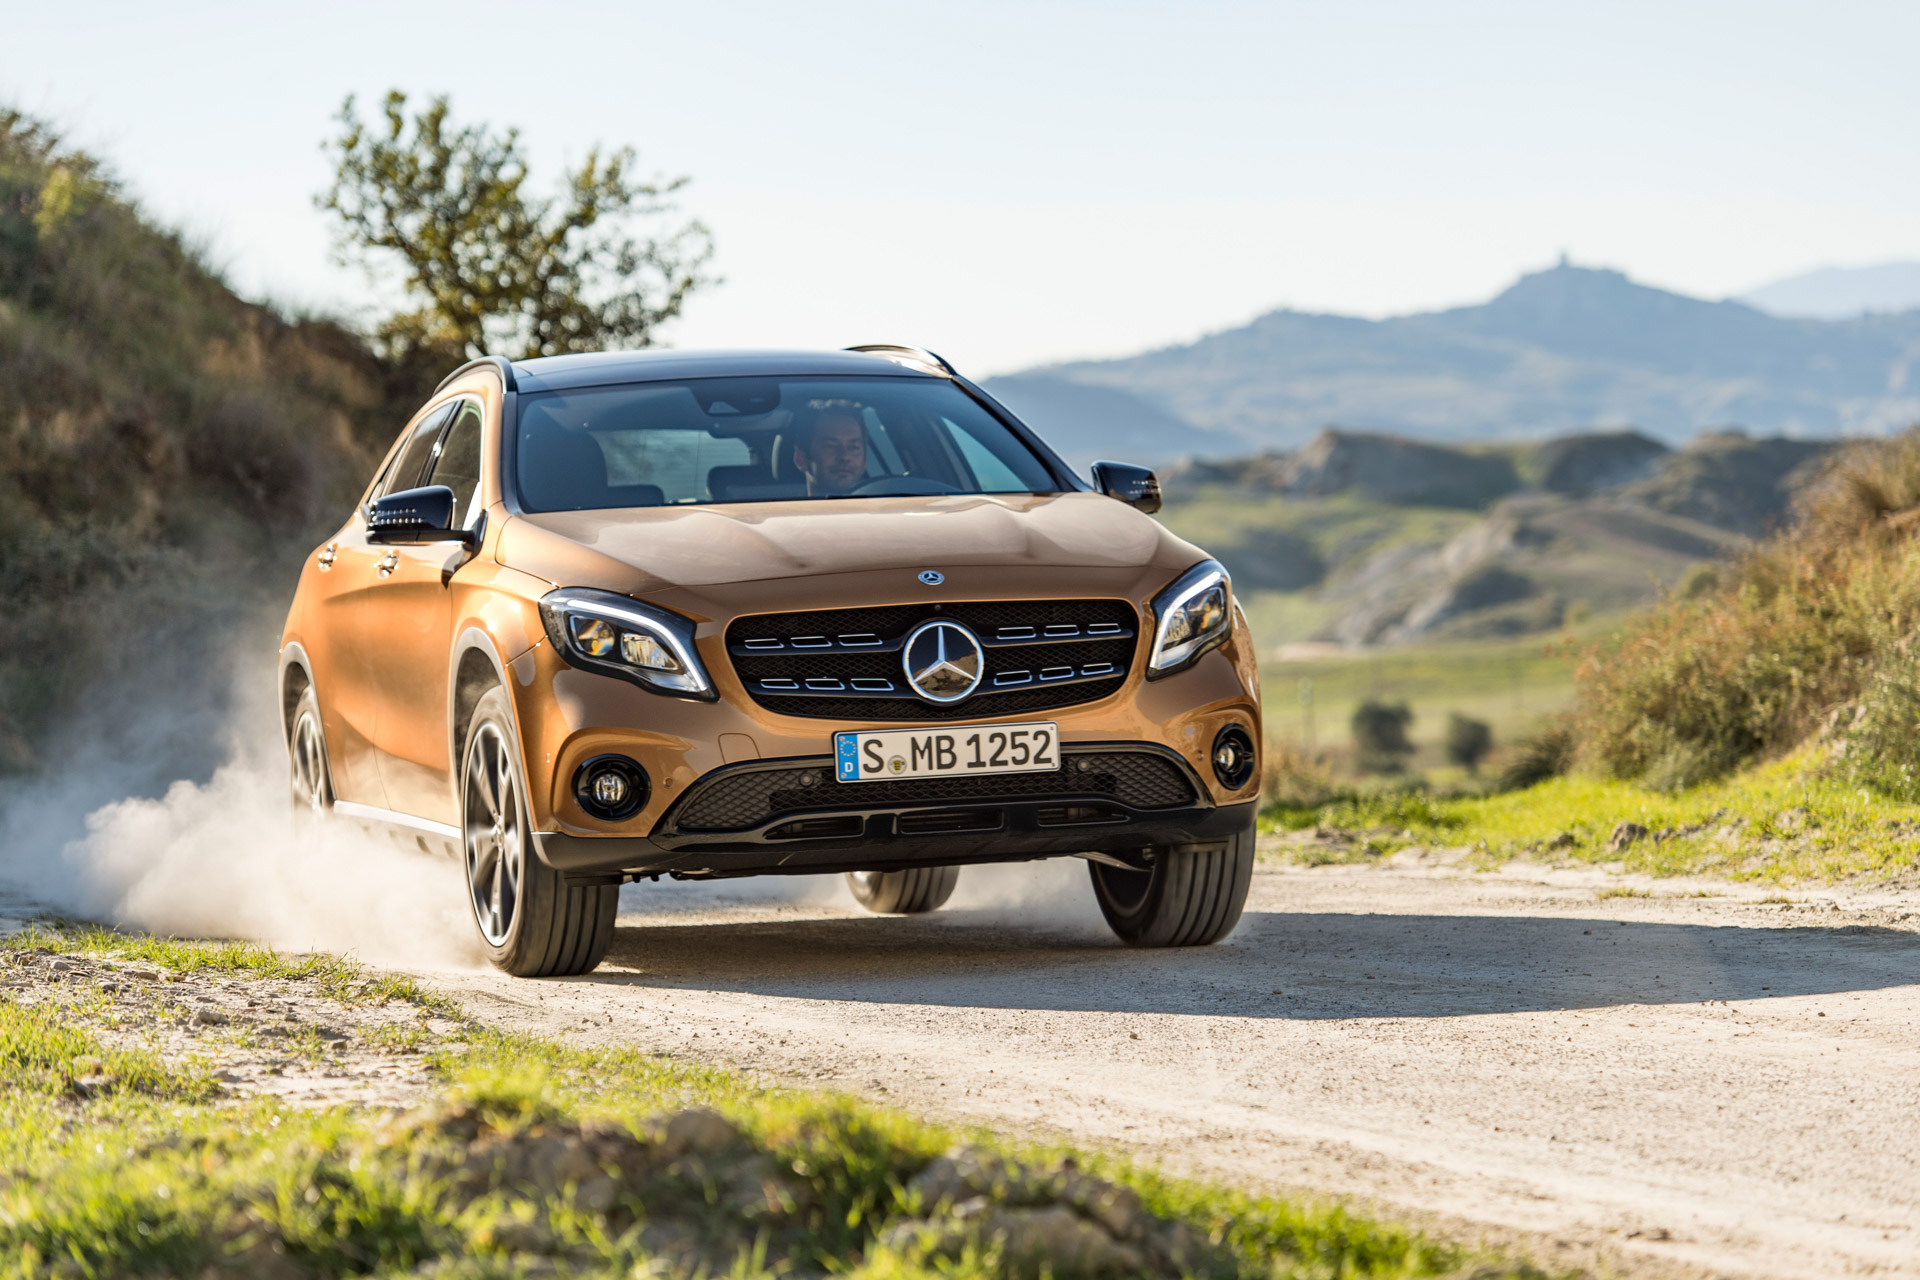 Mercedes-Benz GLA 220d 4MATIC, canyonbeige, Fahraufnahme ;Kraftstoffverbrauch kombiniert: 4,8 l/100 km, CO2-Emissionen kombiniert: 127 g/km Mercedes-Benz GLA 220d 4MATIC, canyon beige, driving shot; Fuel consumption combined:  4.8 l/100 km; Combined CO2 emissions: 127 g/km